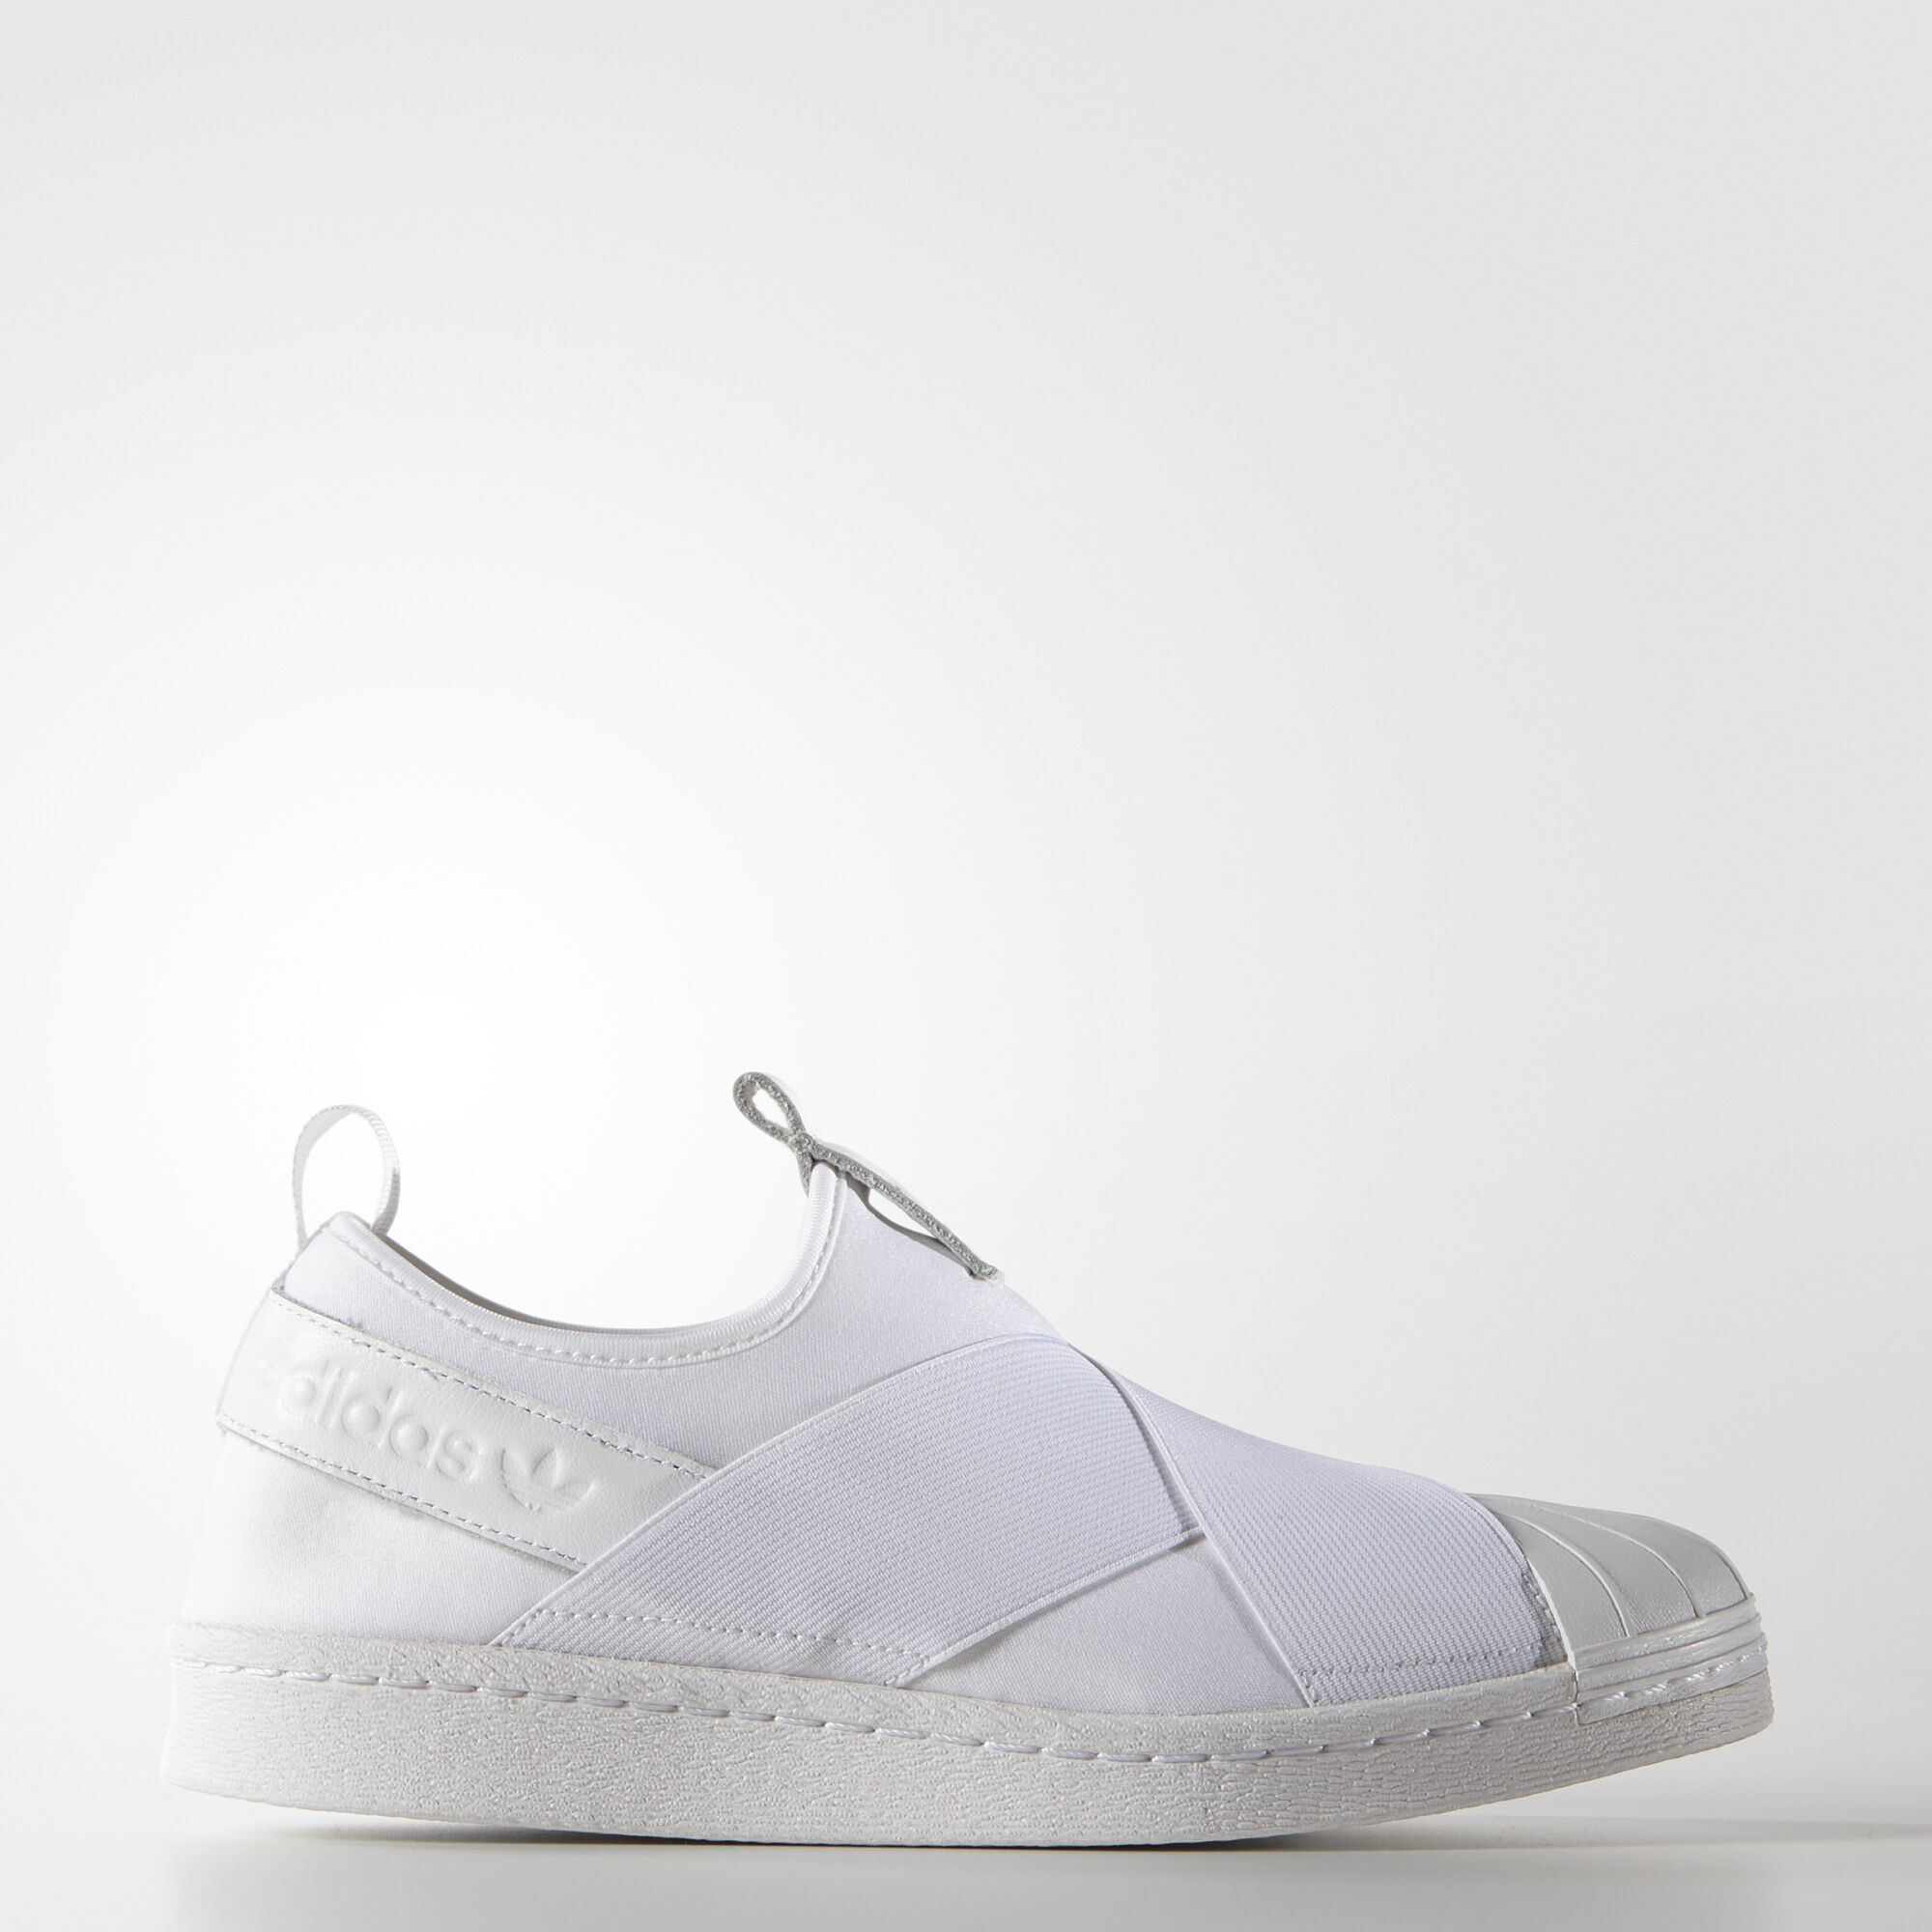 Adidas adidas Originals Superstar Foundation White Unisex Sneakers